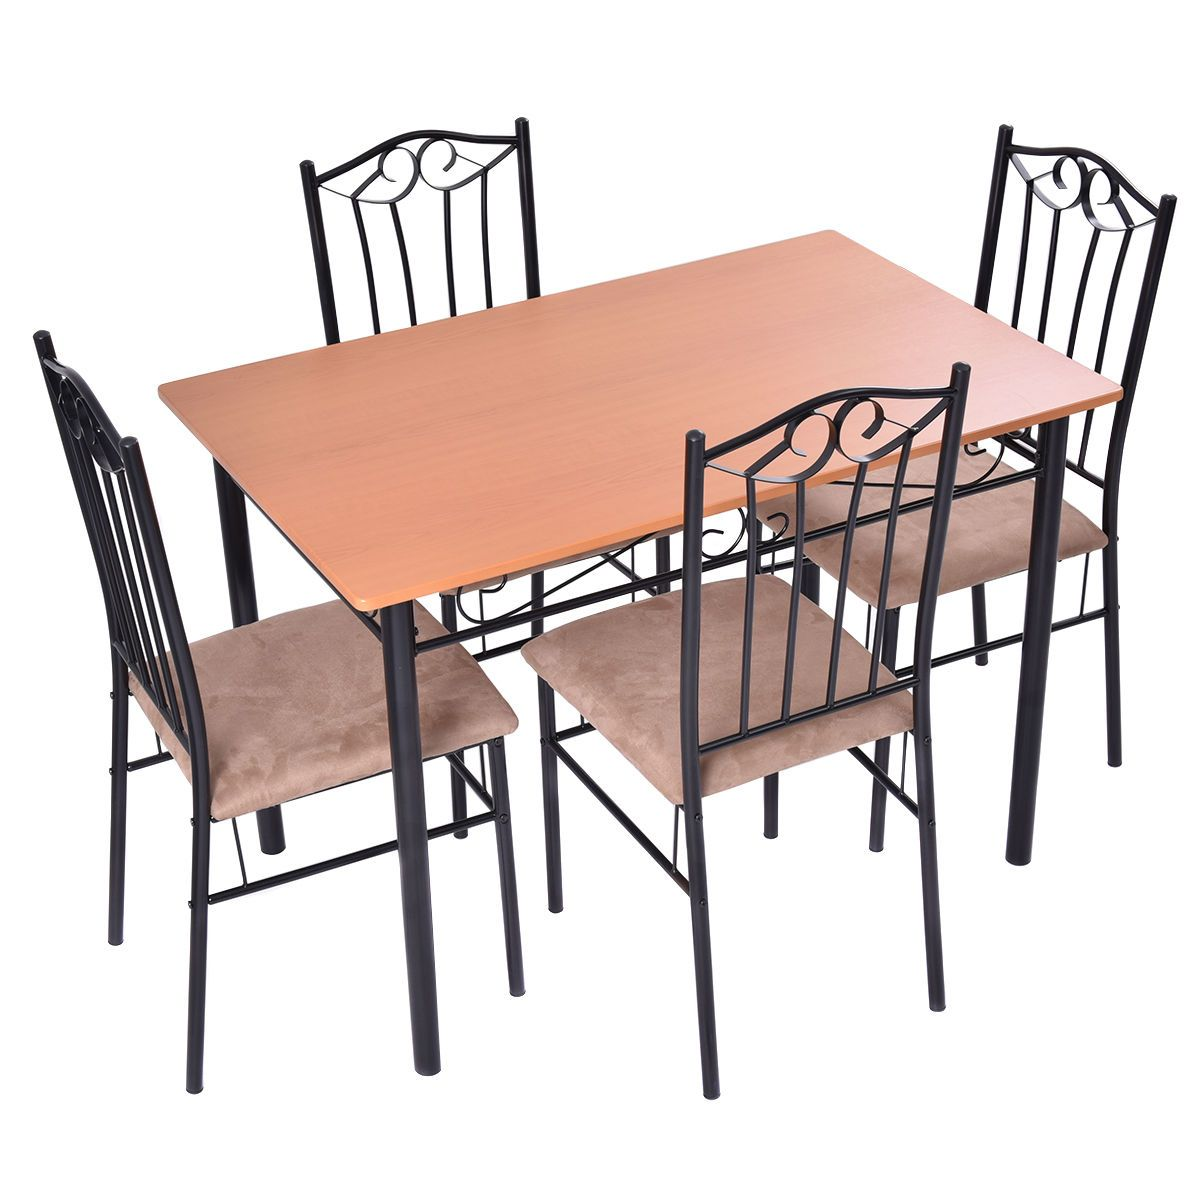 5 pc dining set wood metal table and 4 chairs kitchen breakfast rh pinterest com